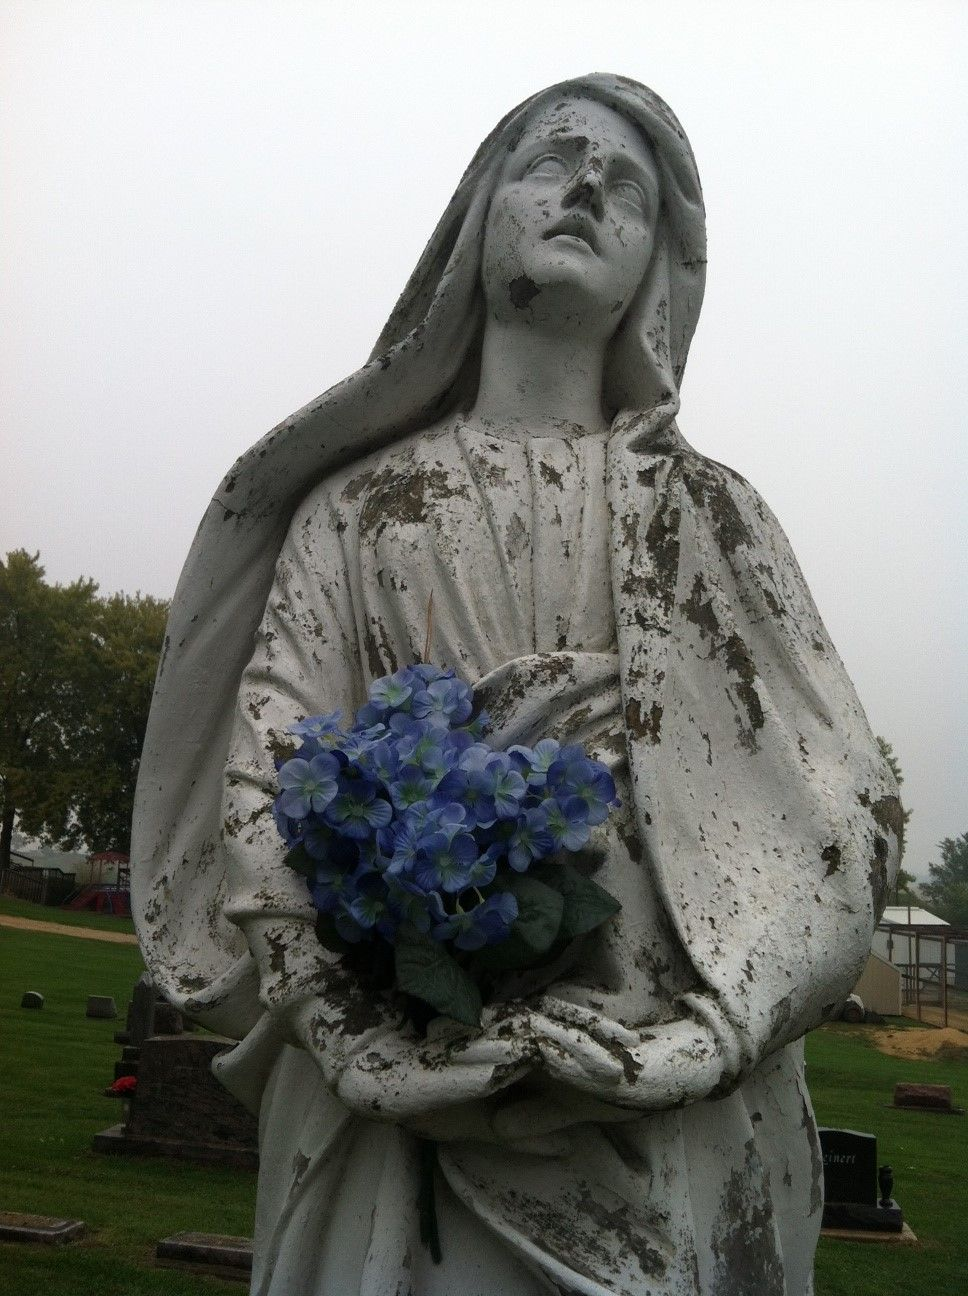 Angel at Ss. Peter and Paul Cemetery, Sherrill, IA